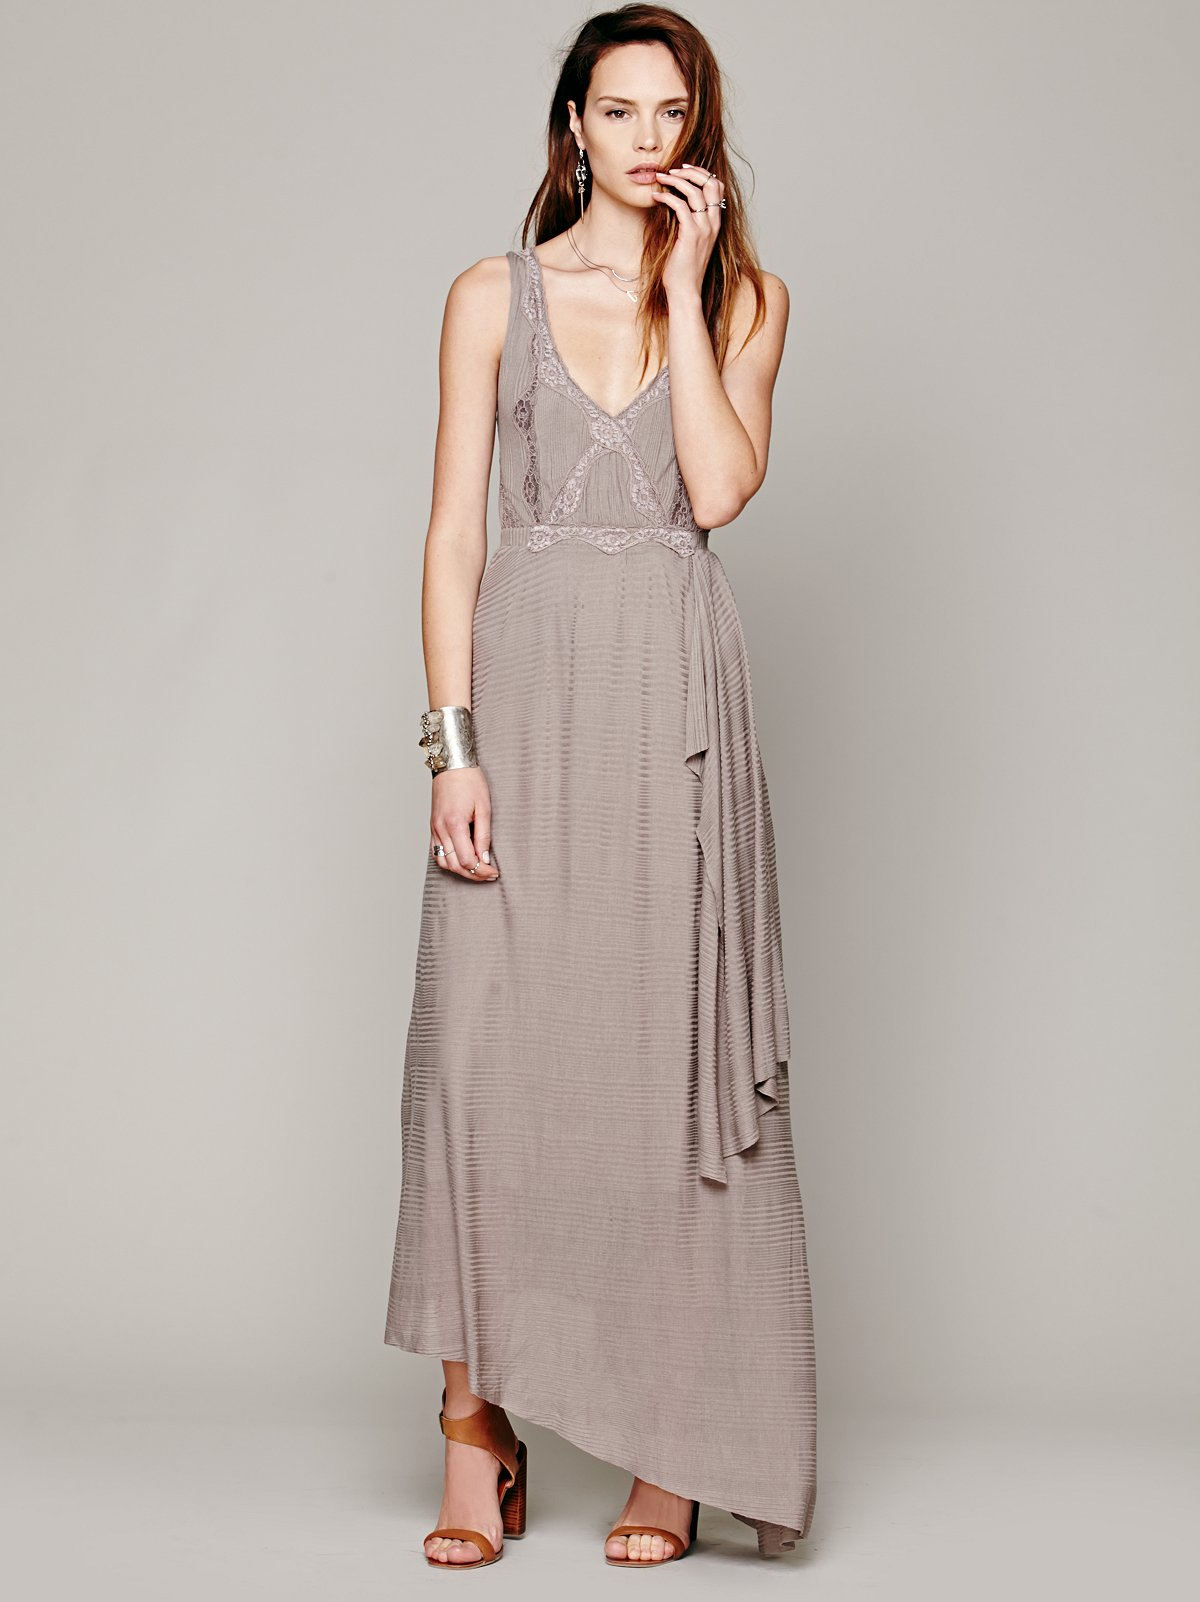 FP X Sea Siren Maxi Dress